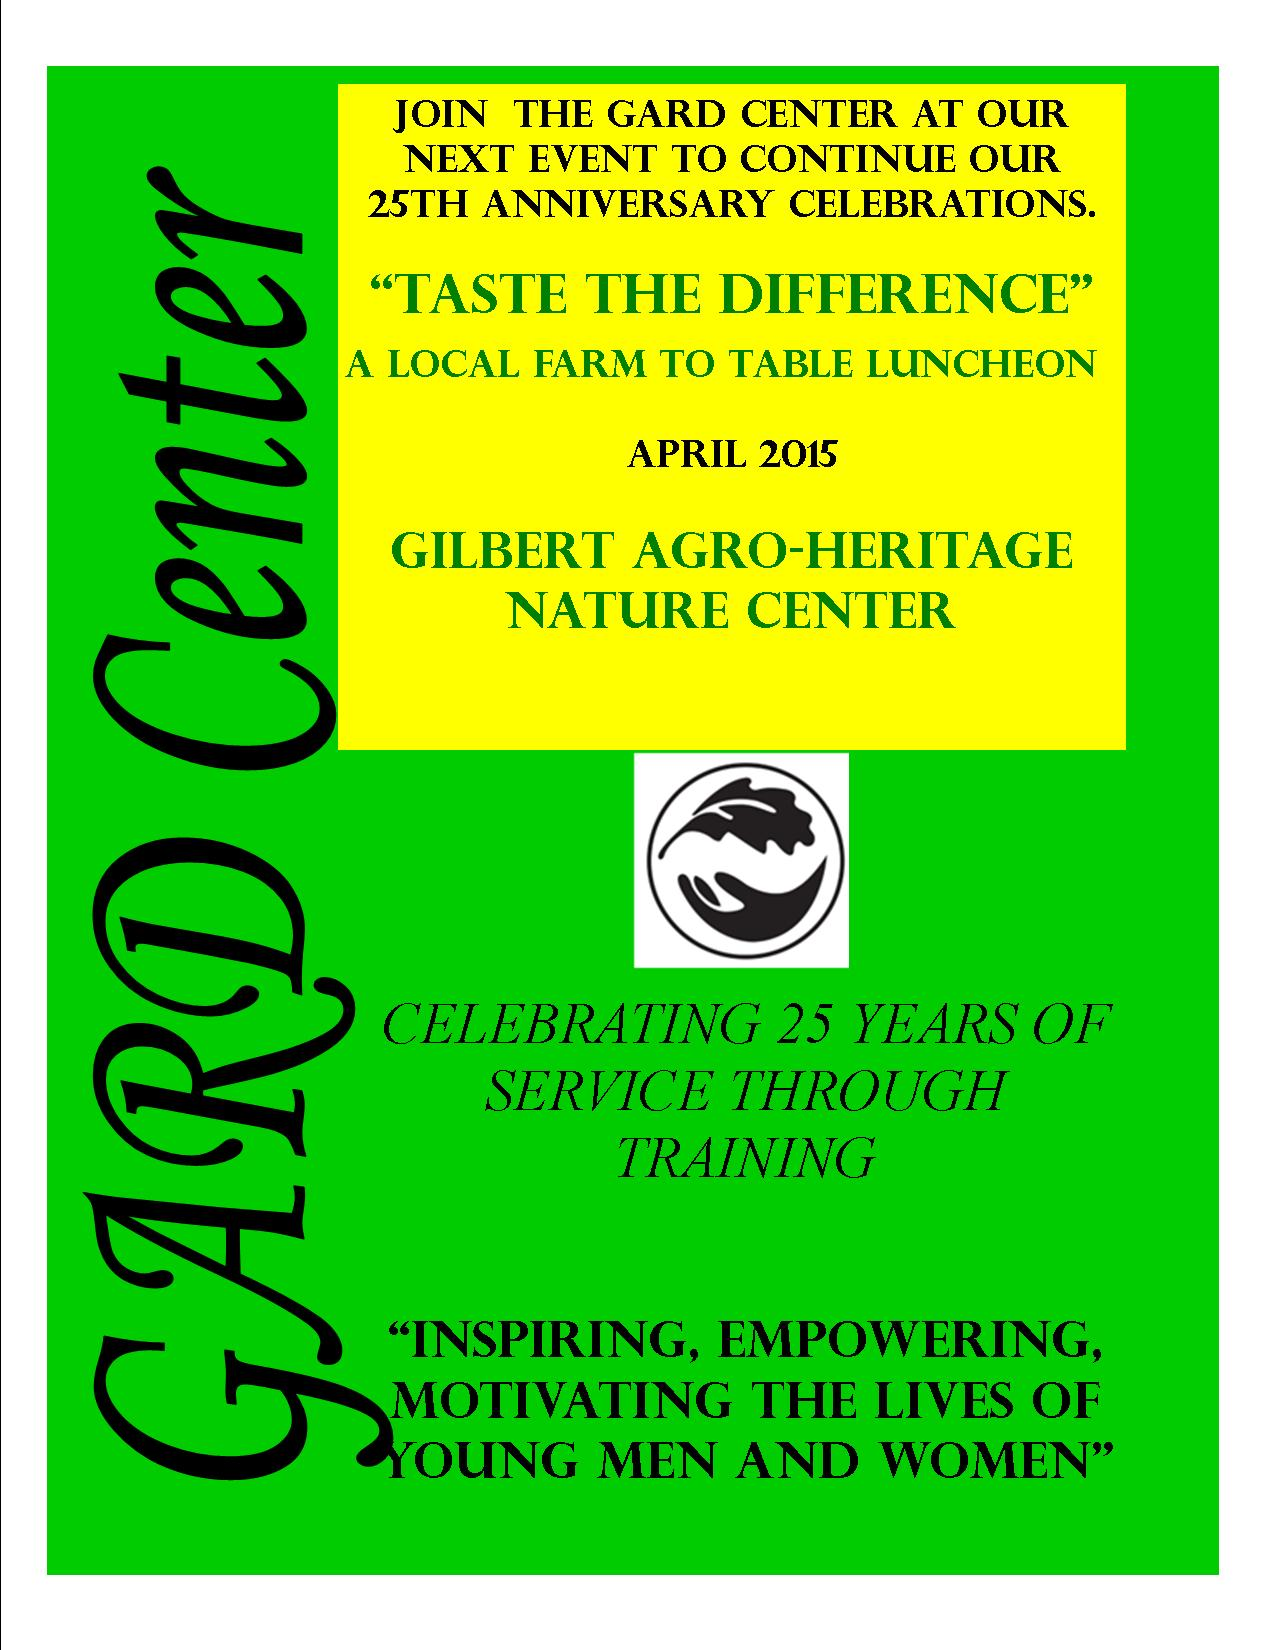 GARD Center 25th Anniversary Farm-to-Table April 2015